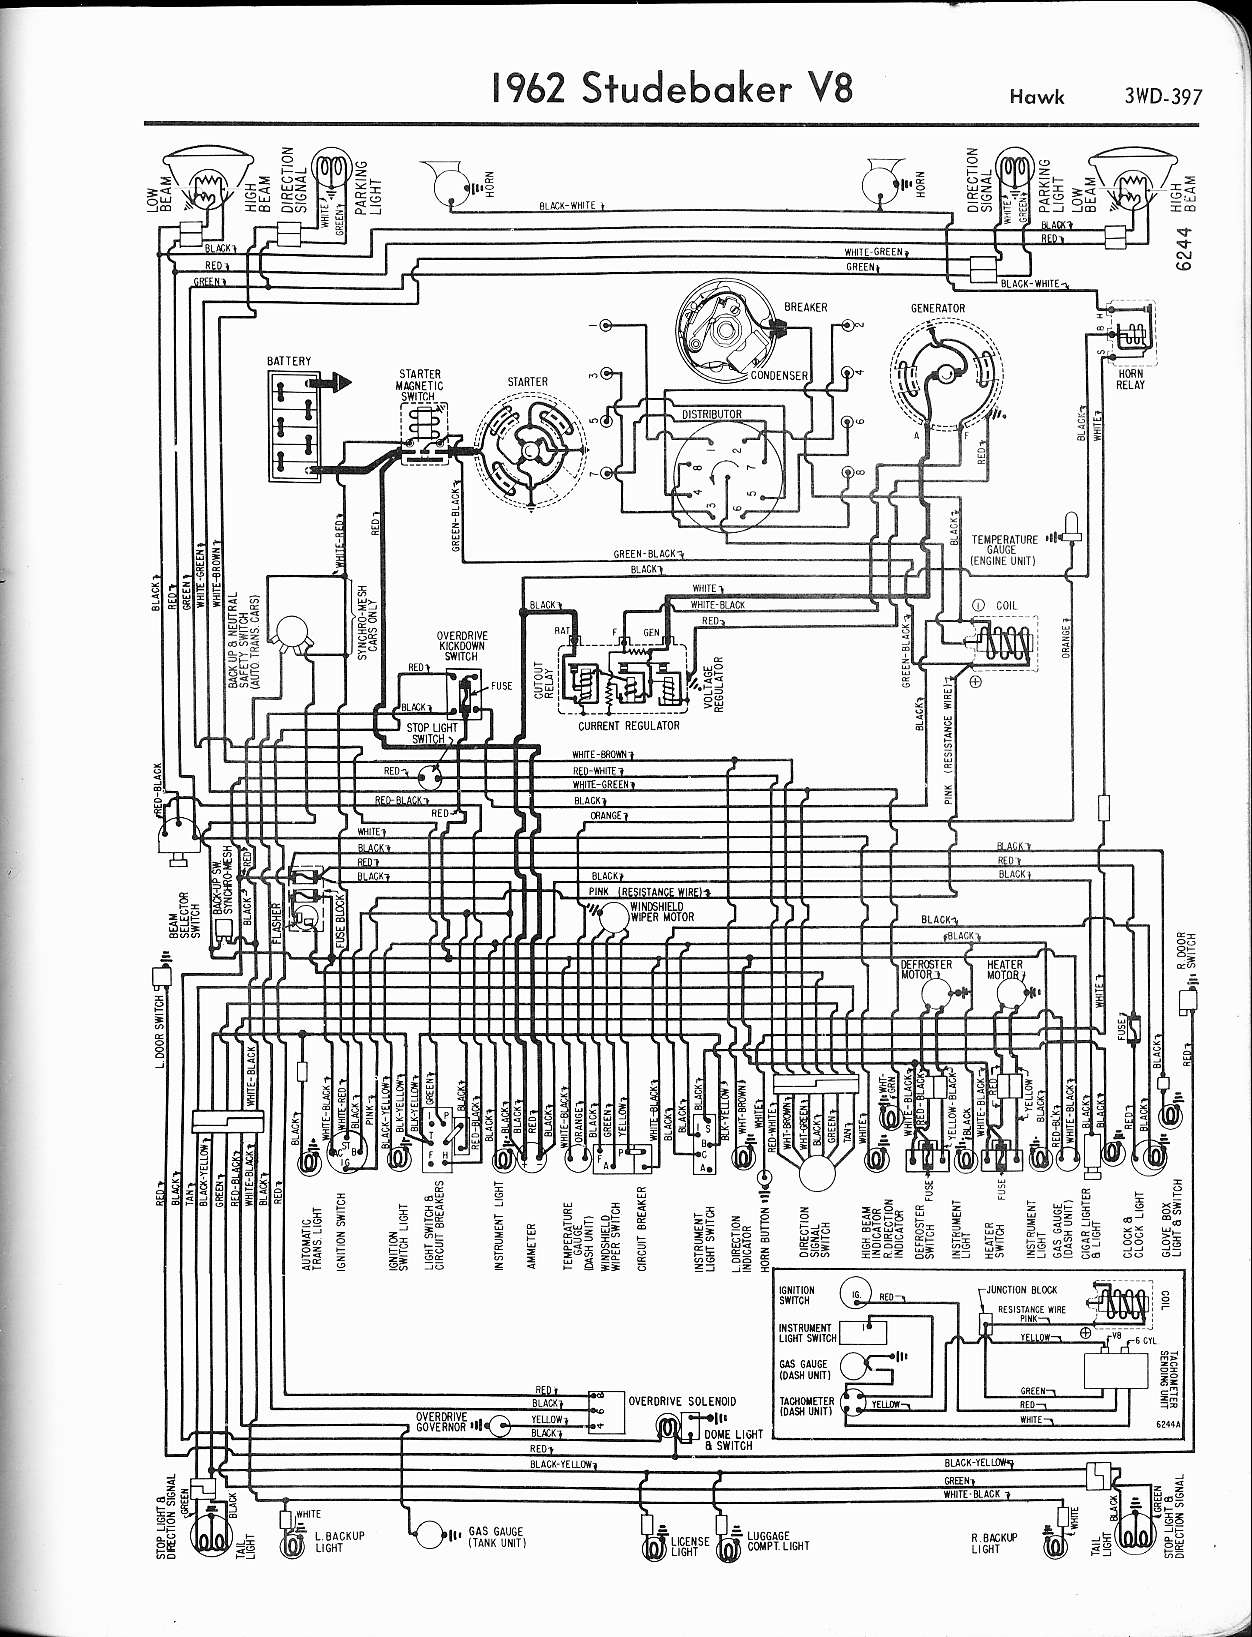 studebaker wiring diagrams the old car manual project rh oldcarmanualproject com 1981 Avanti 1963 Avanti Interior